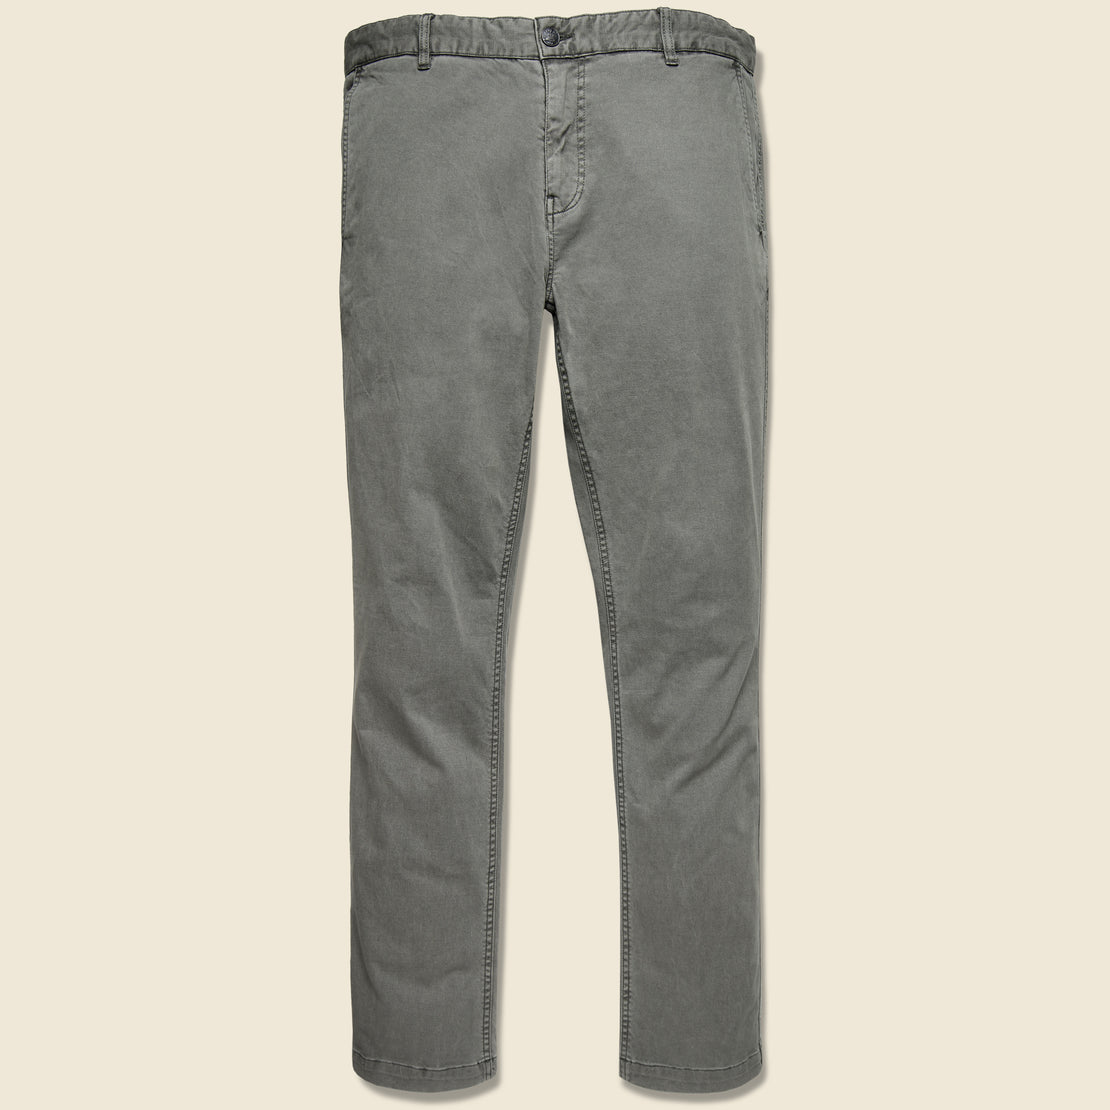 Faherty Comfort Canvas Trouser - Ash